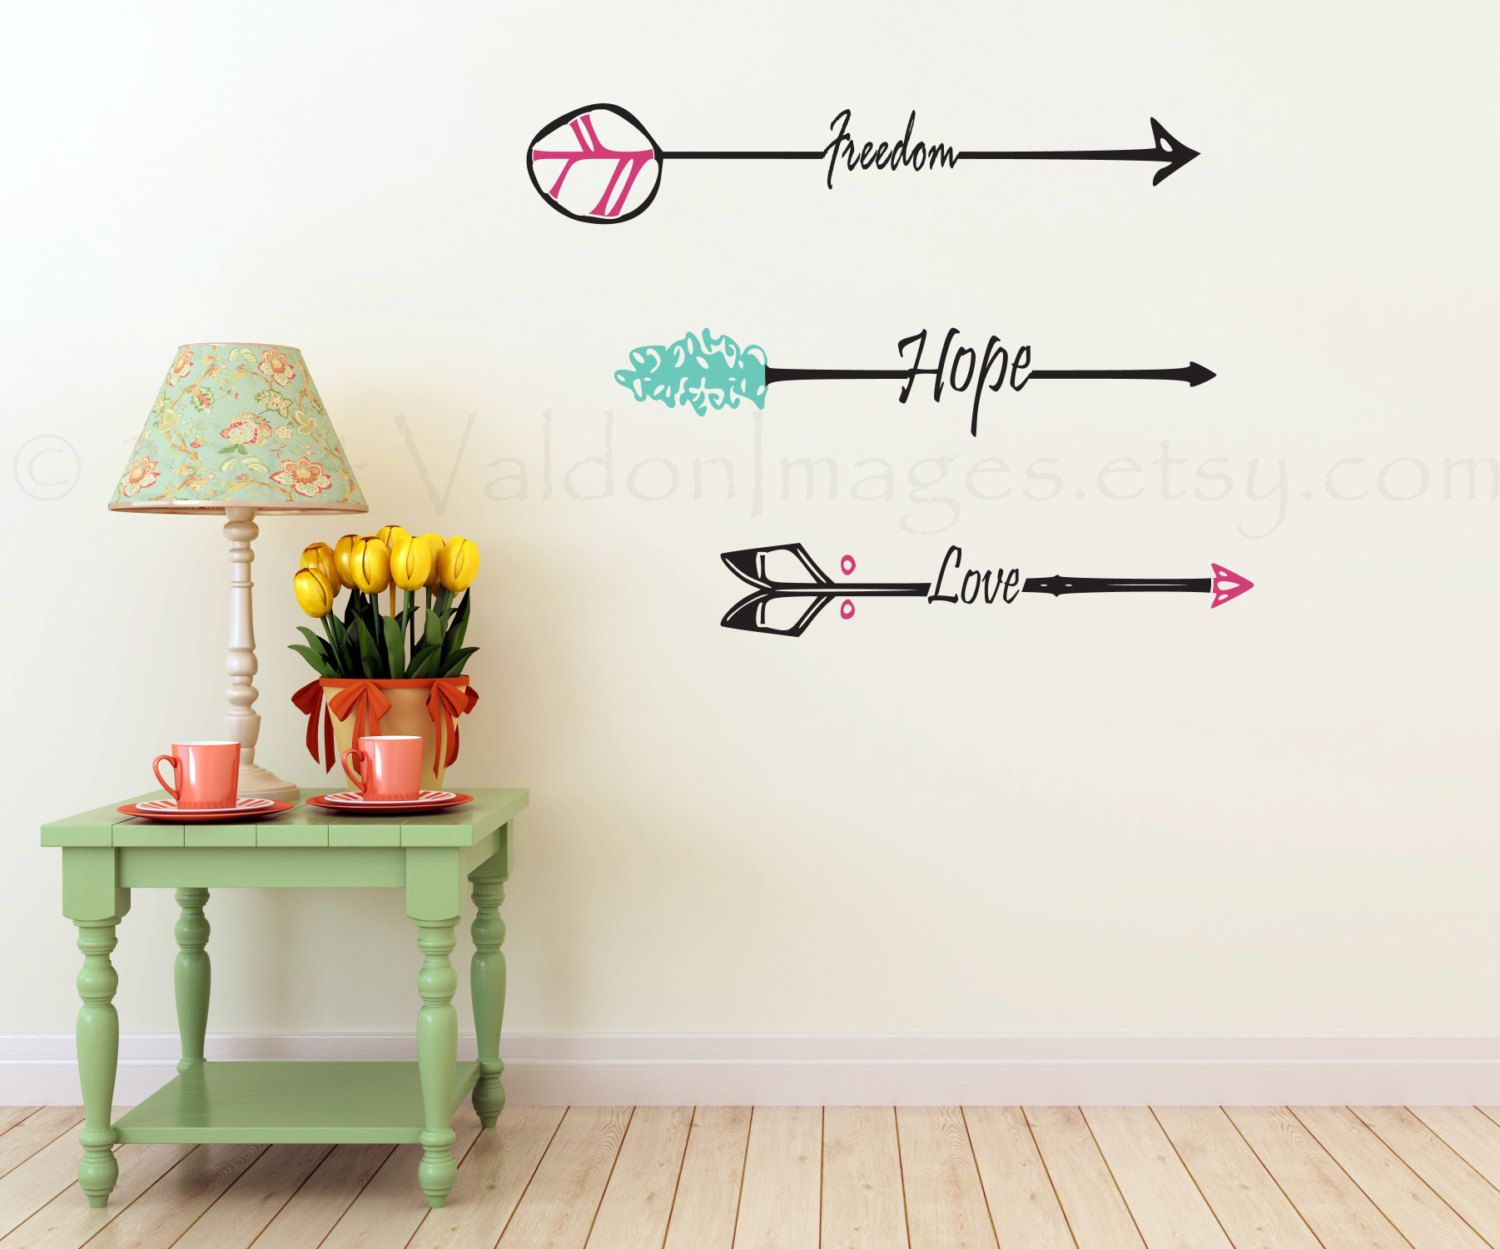 Freedom arrow wall decal, inspirational wall decal, living room ...